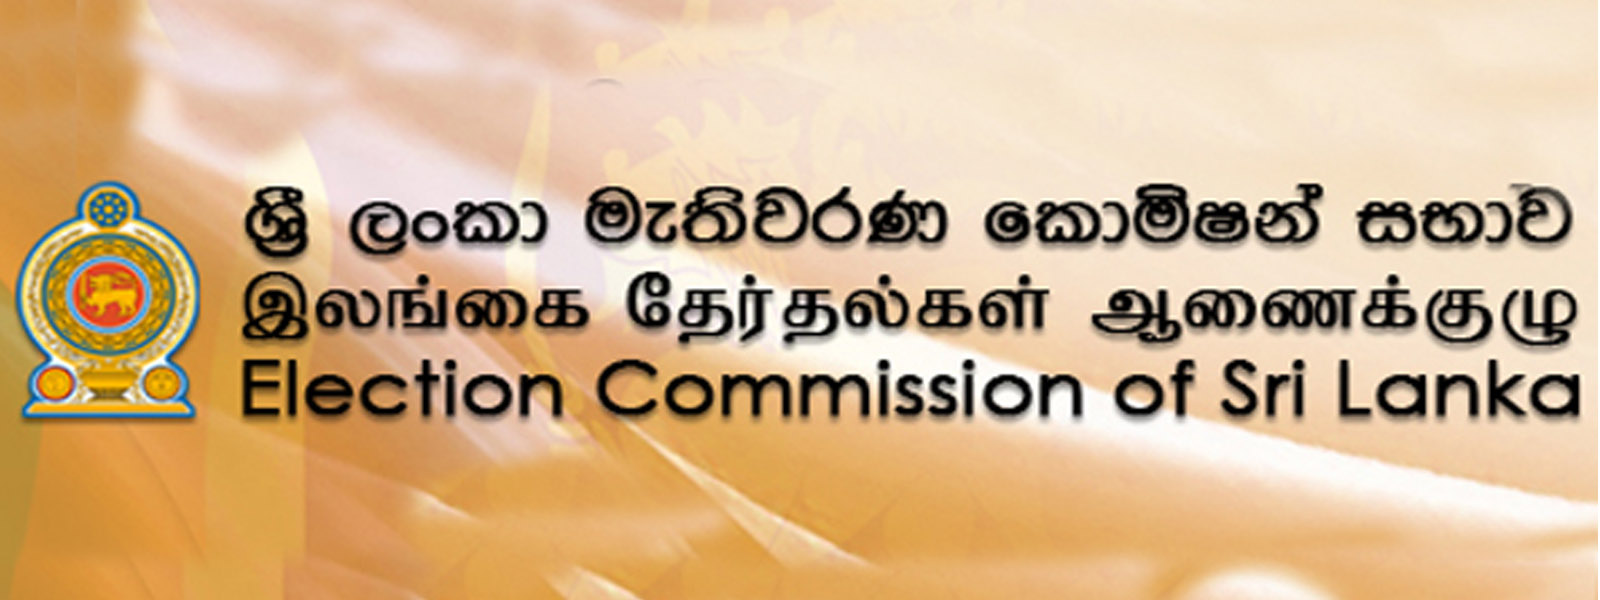 2019 electoral register to be displayed from today